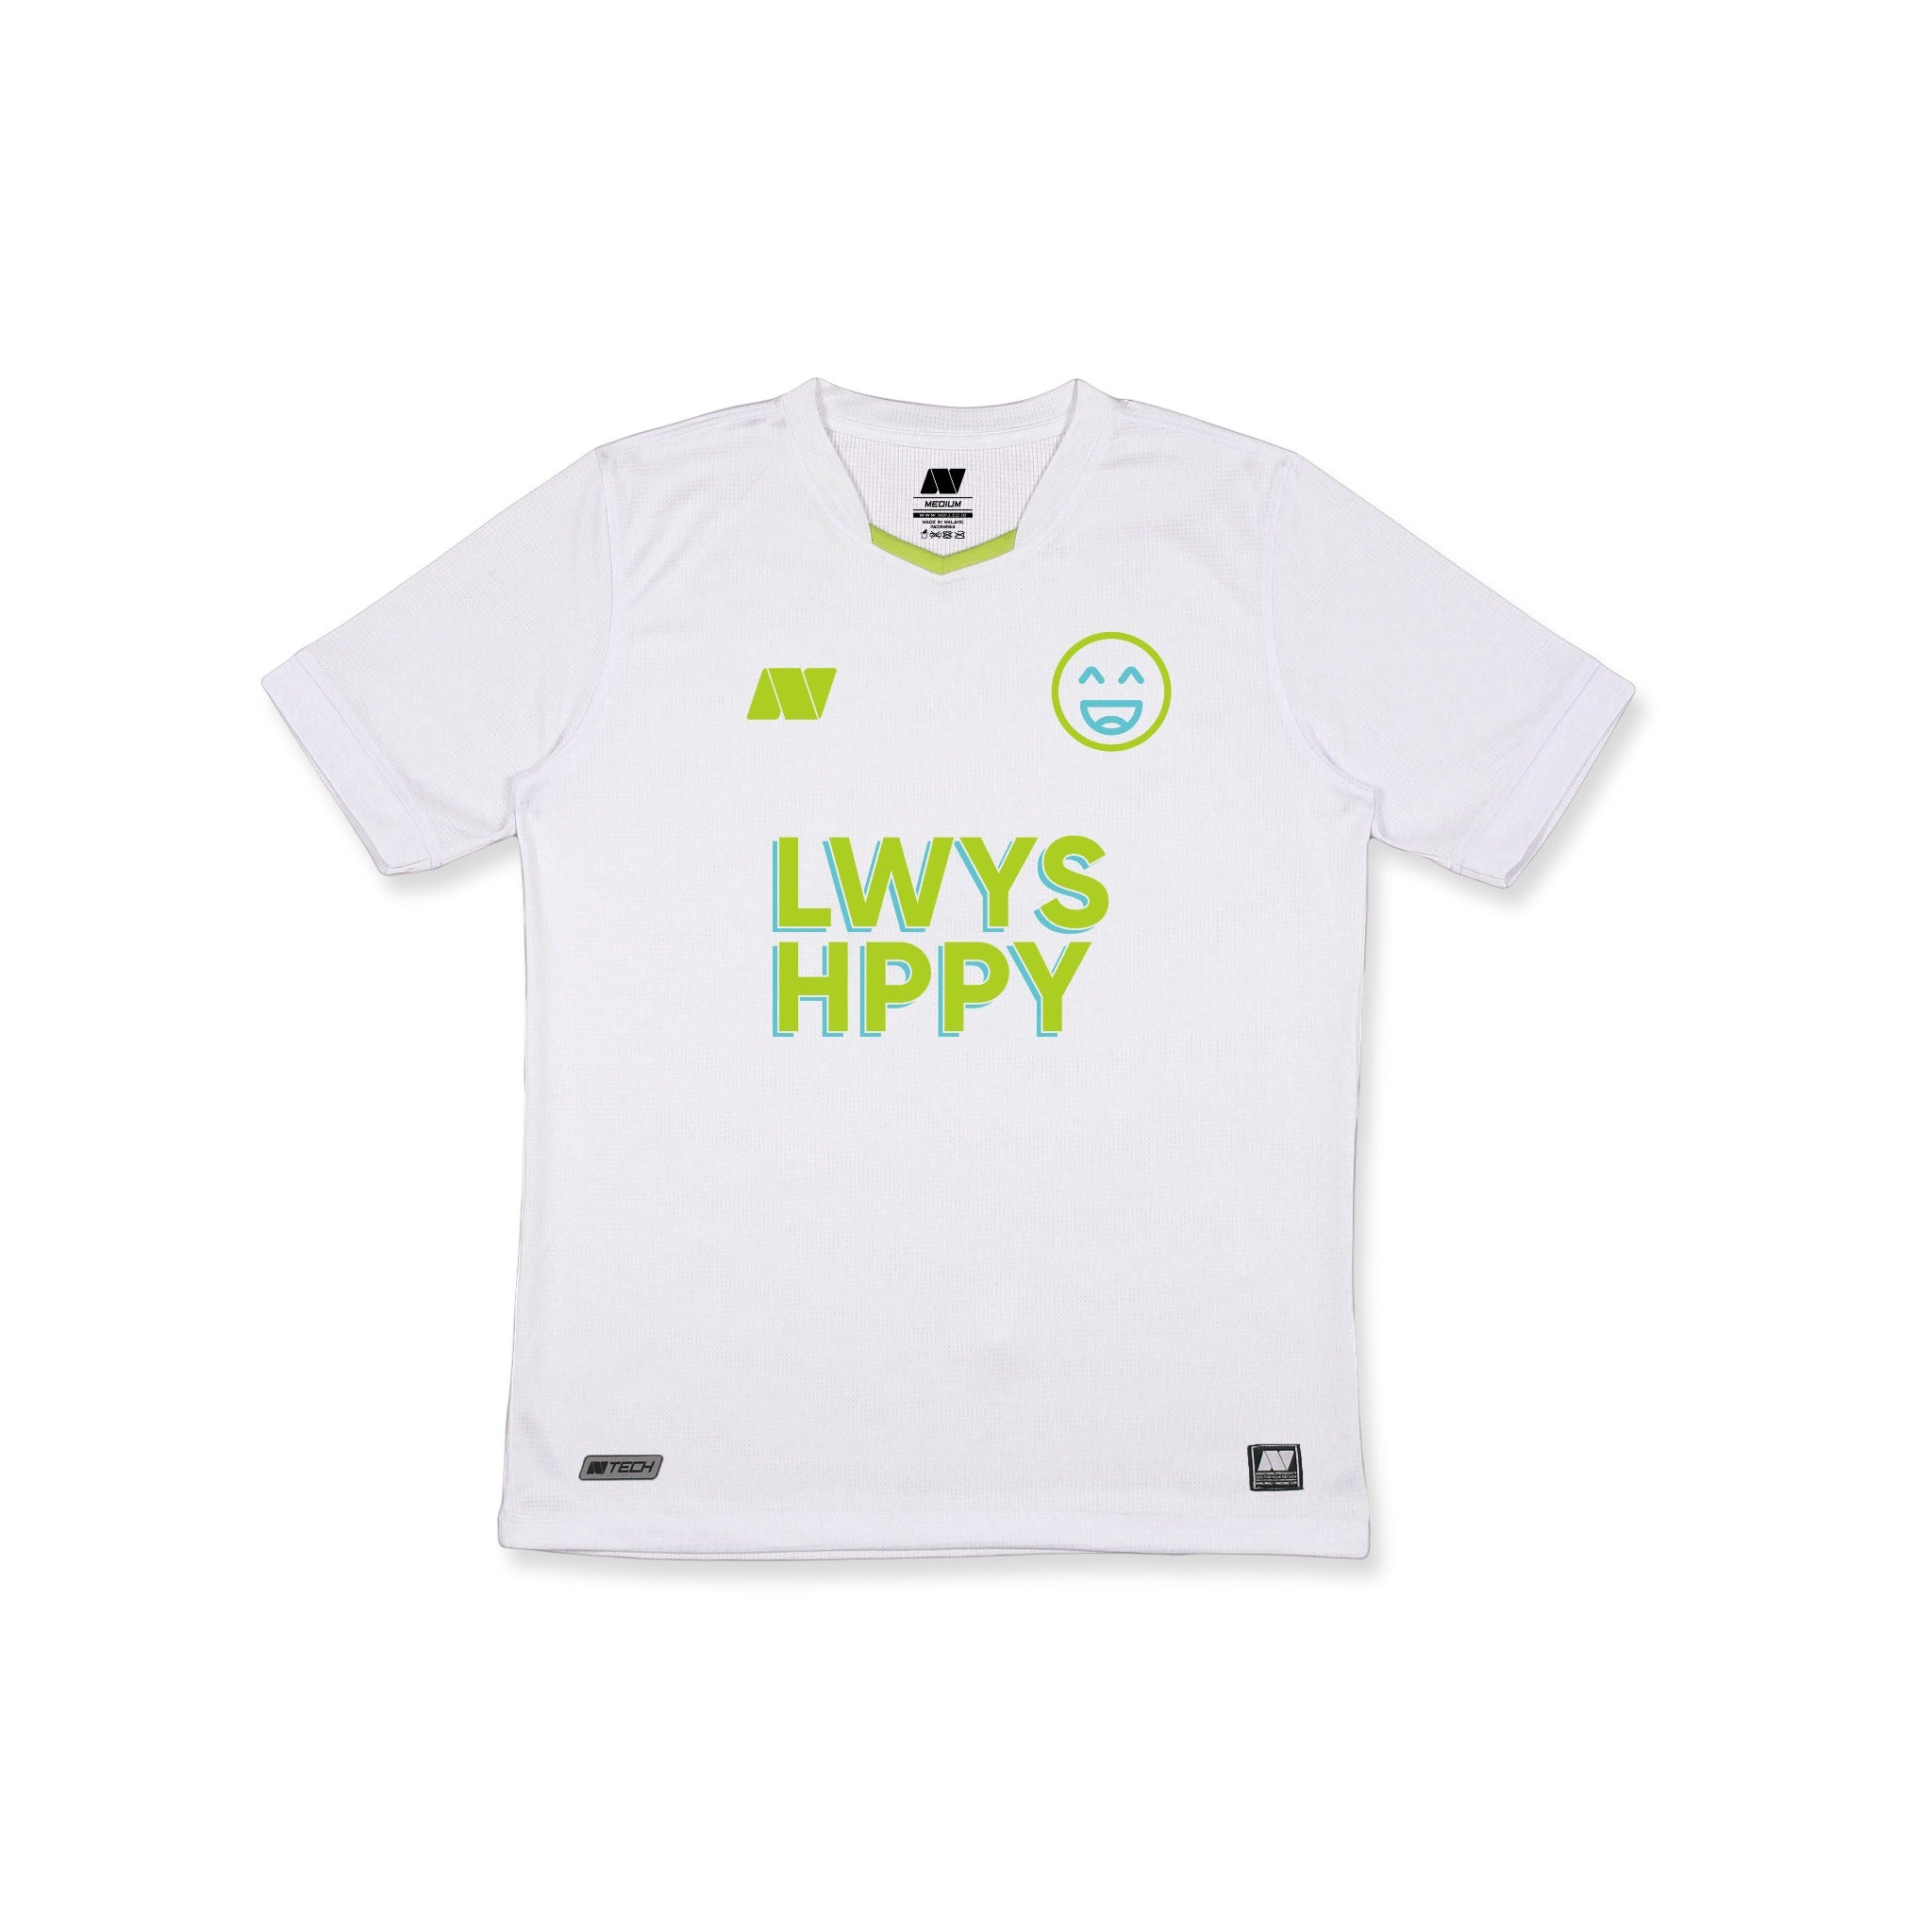 "JERSEY ""LWYS HPPY"" WHITE"